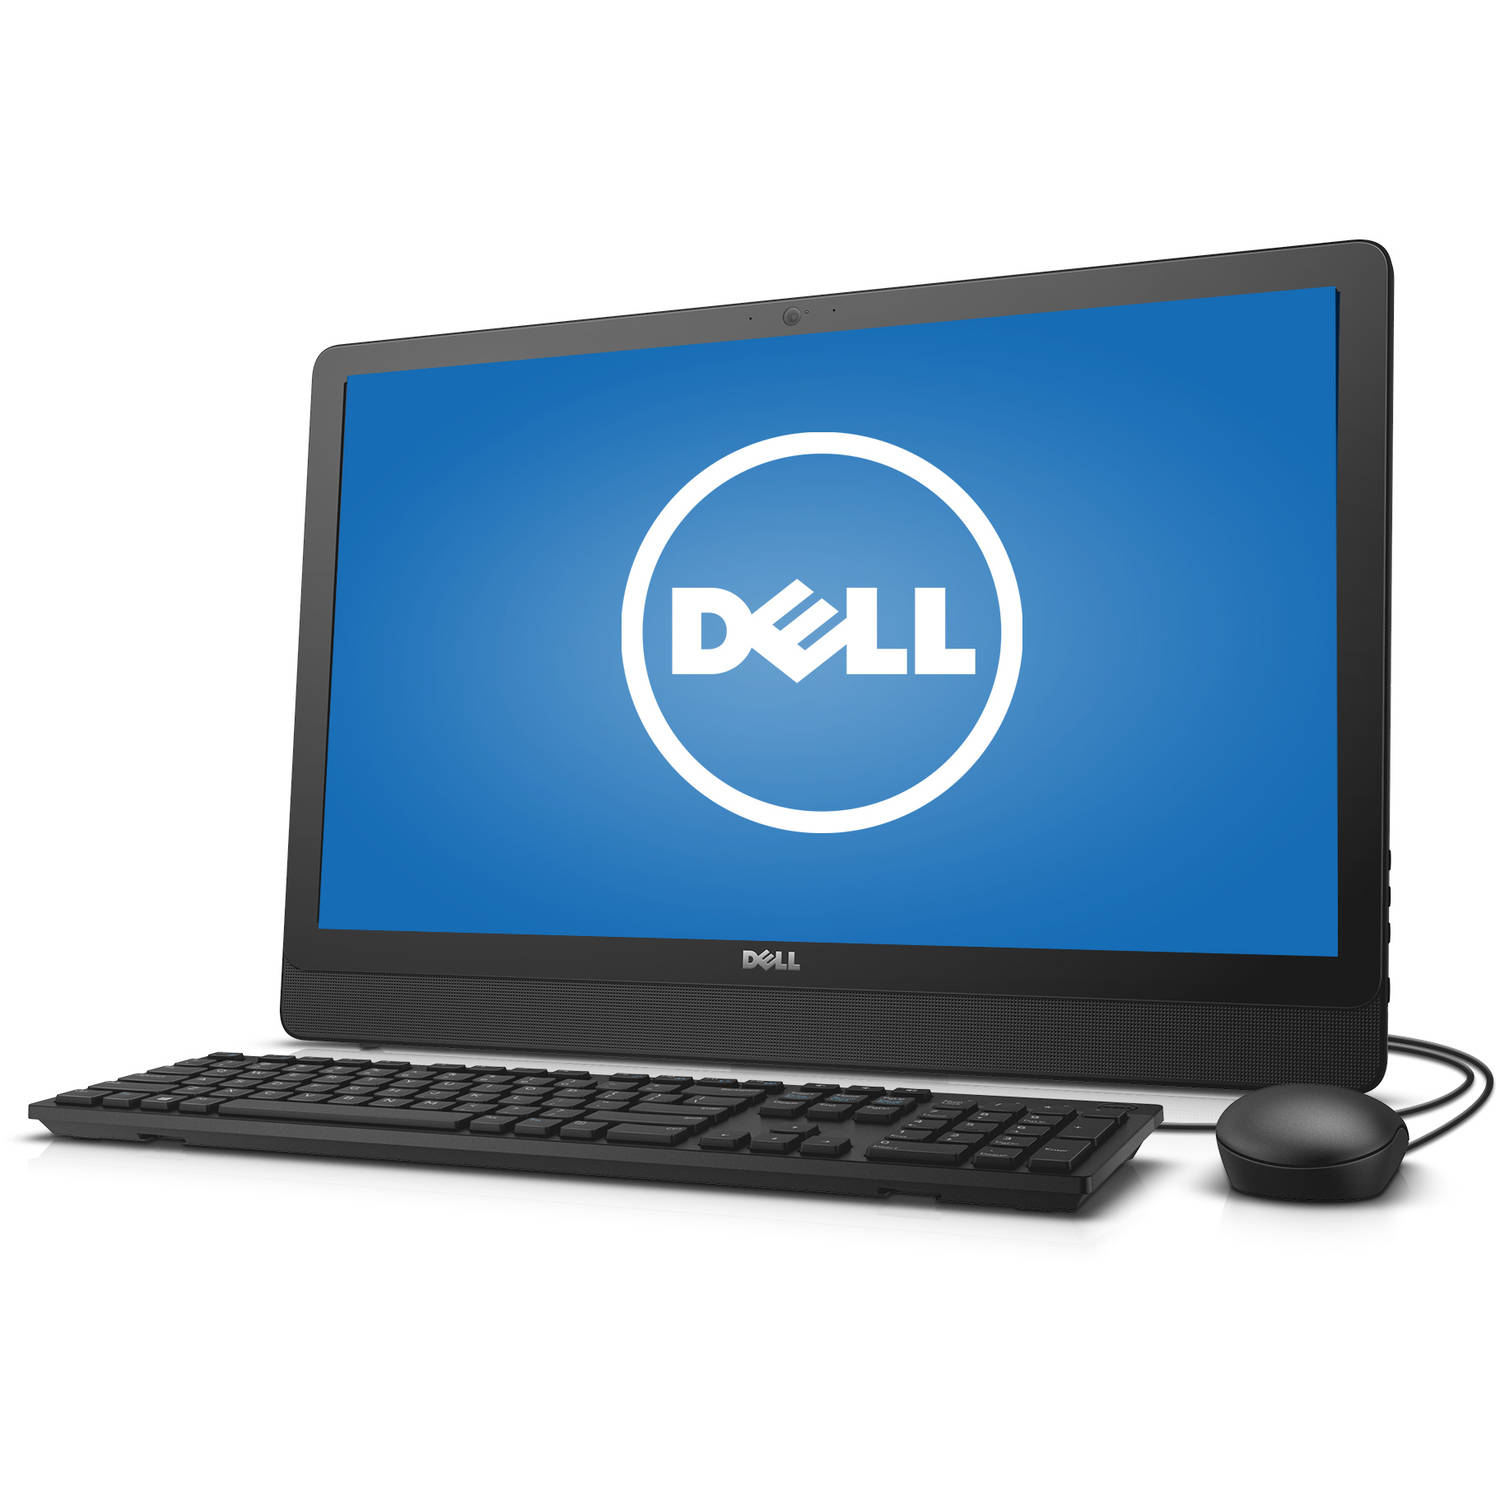 "Dell - Inspiron 23.8"" All-In-One - AMD E2-Series - 4GB Memory - 500"